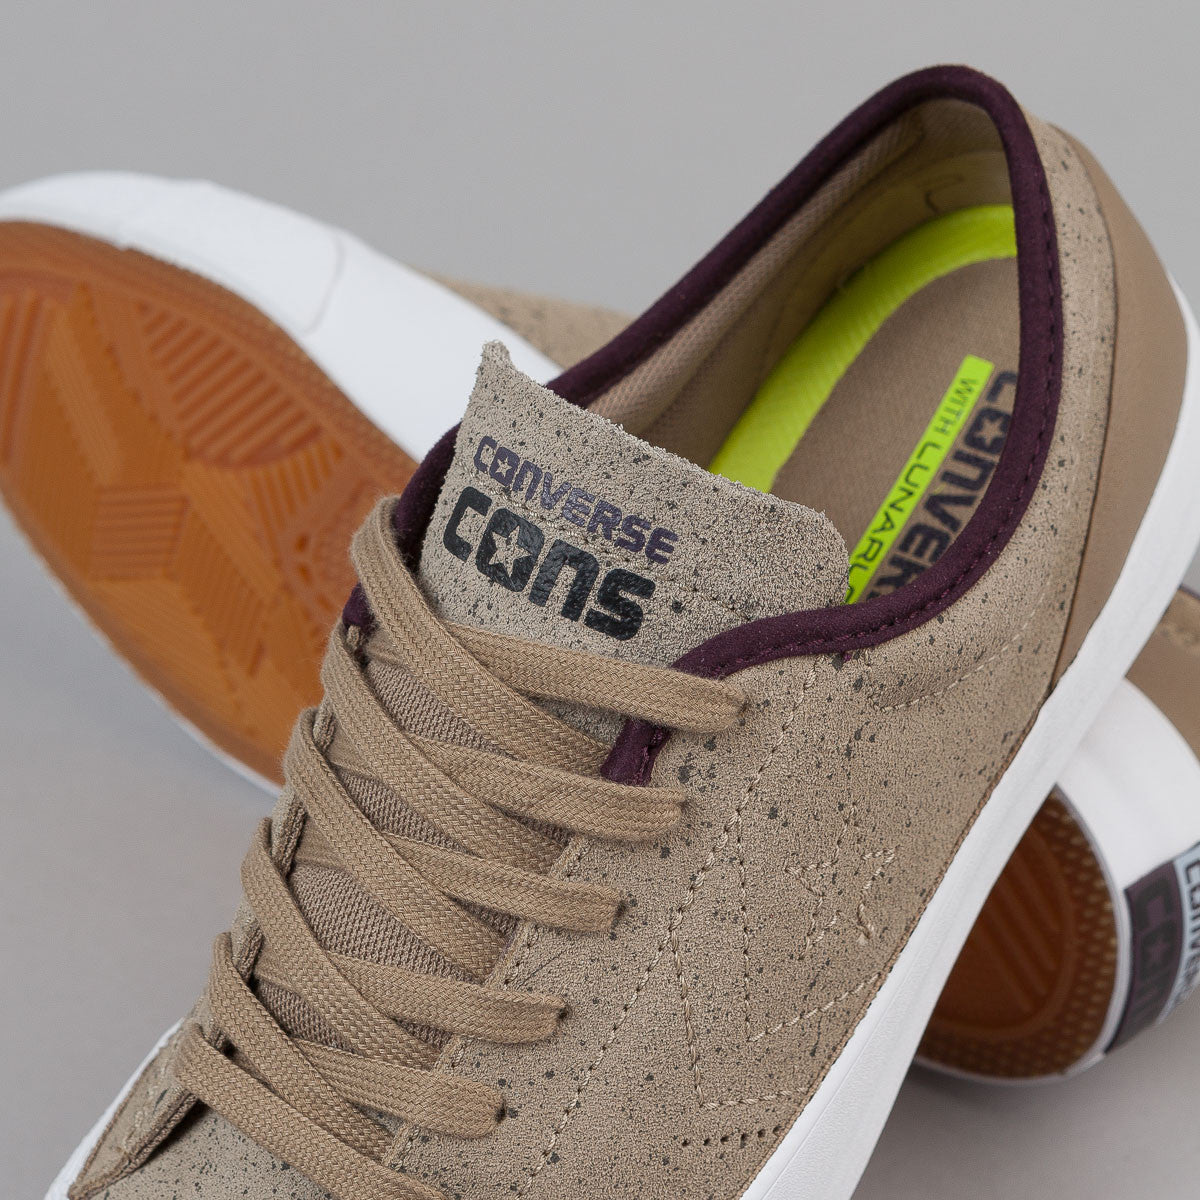 Converse CONS Sumner OX - Sandy / Black Cherry / White